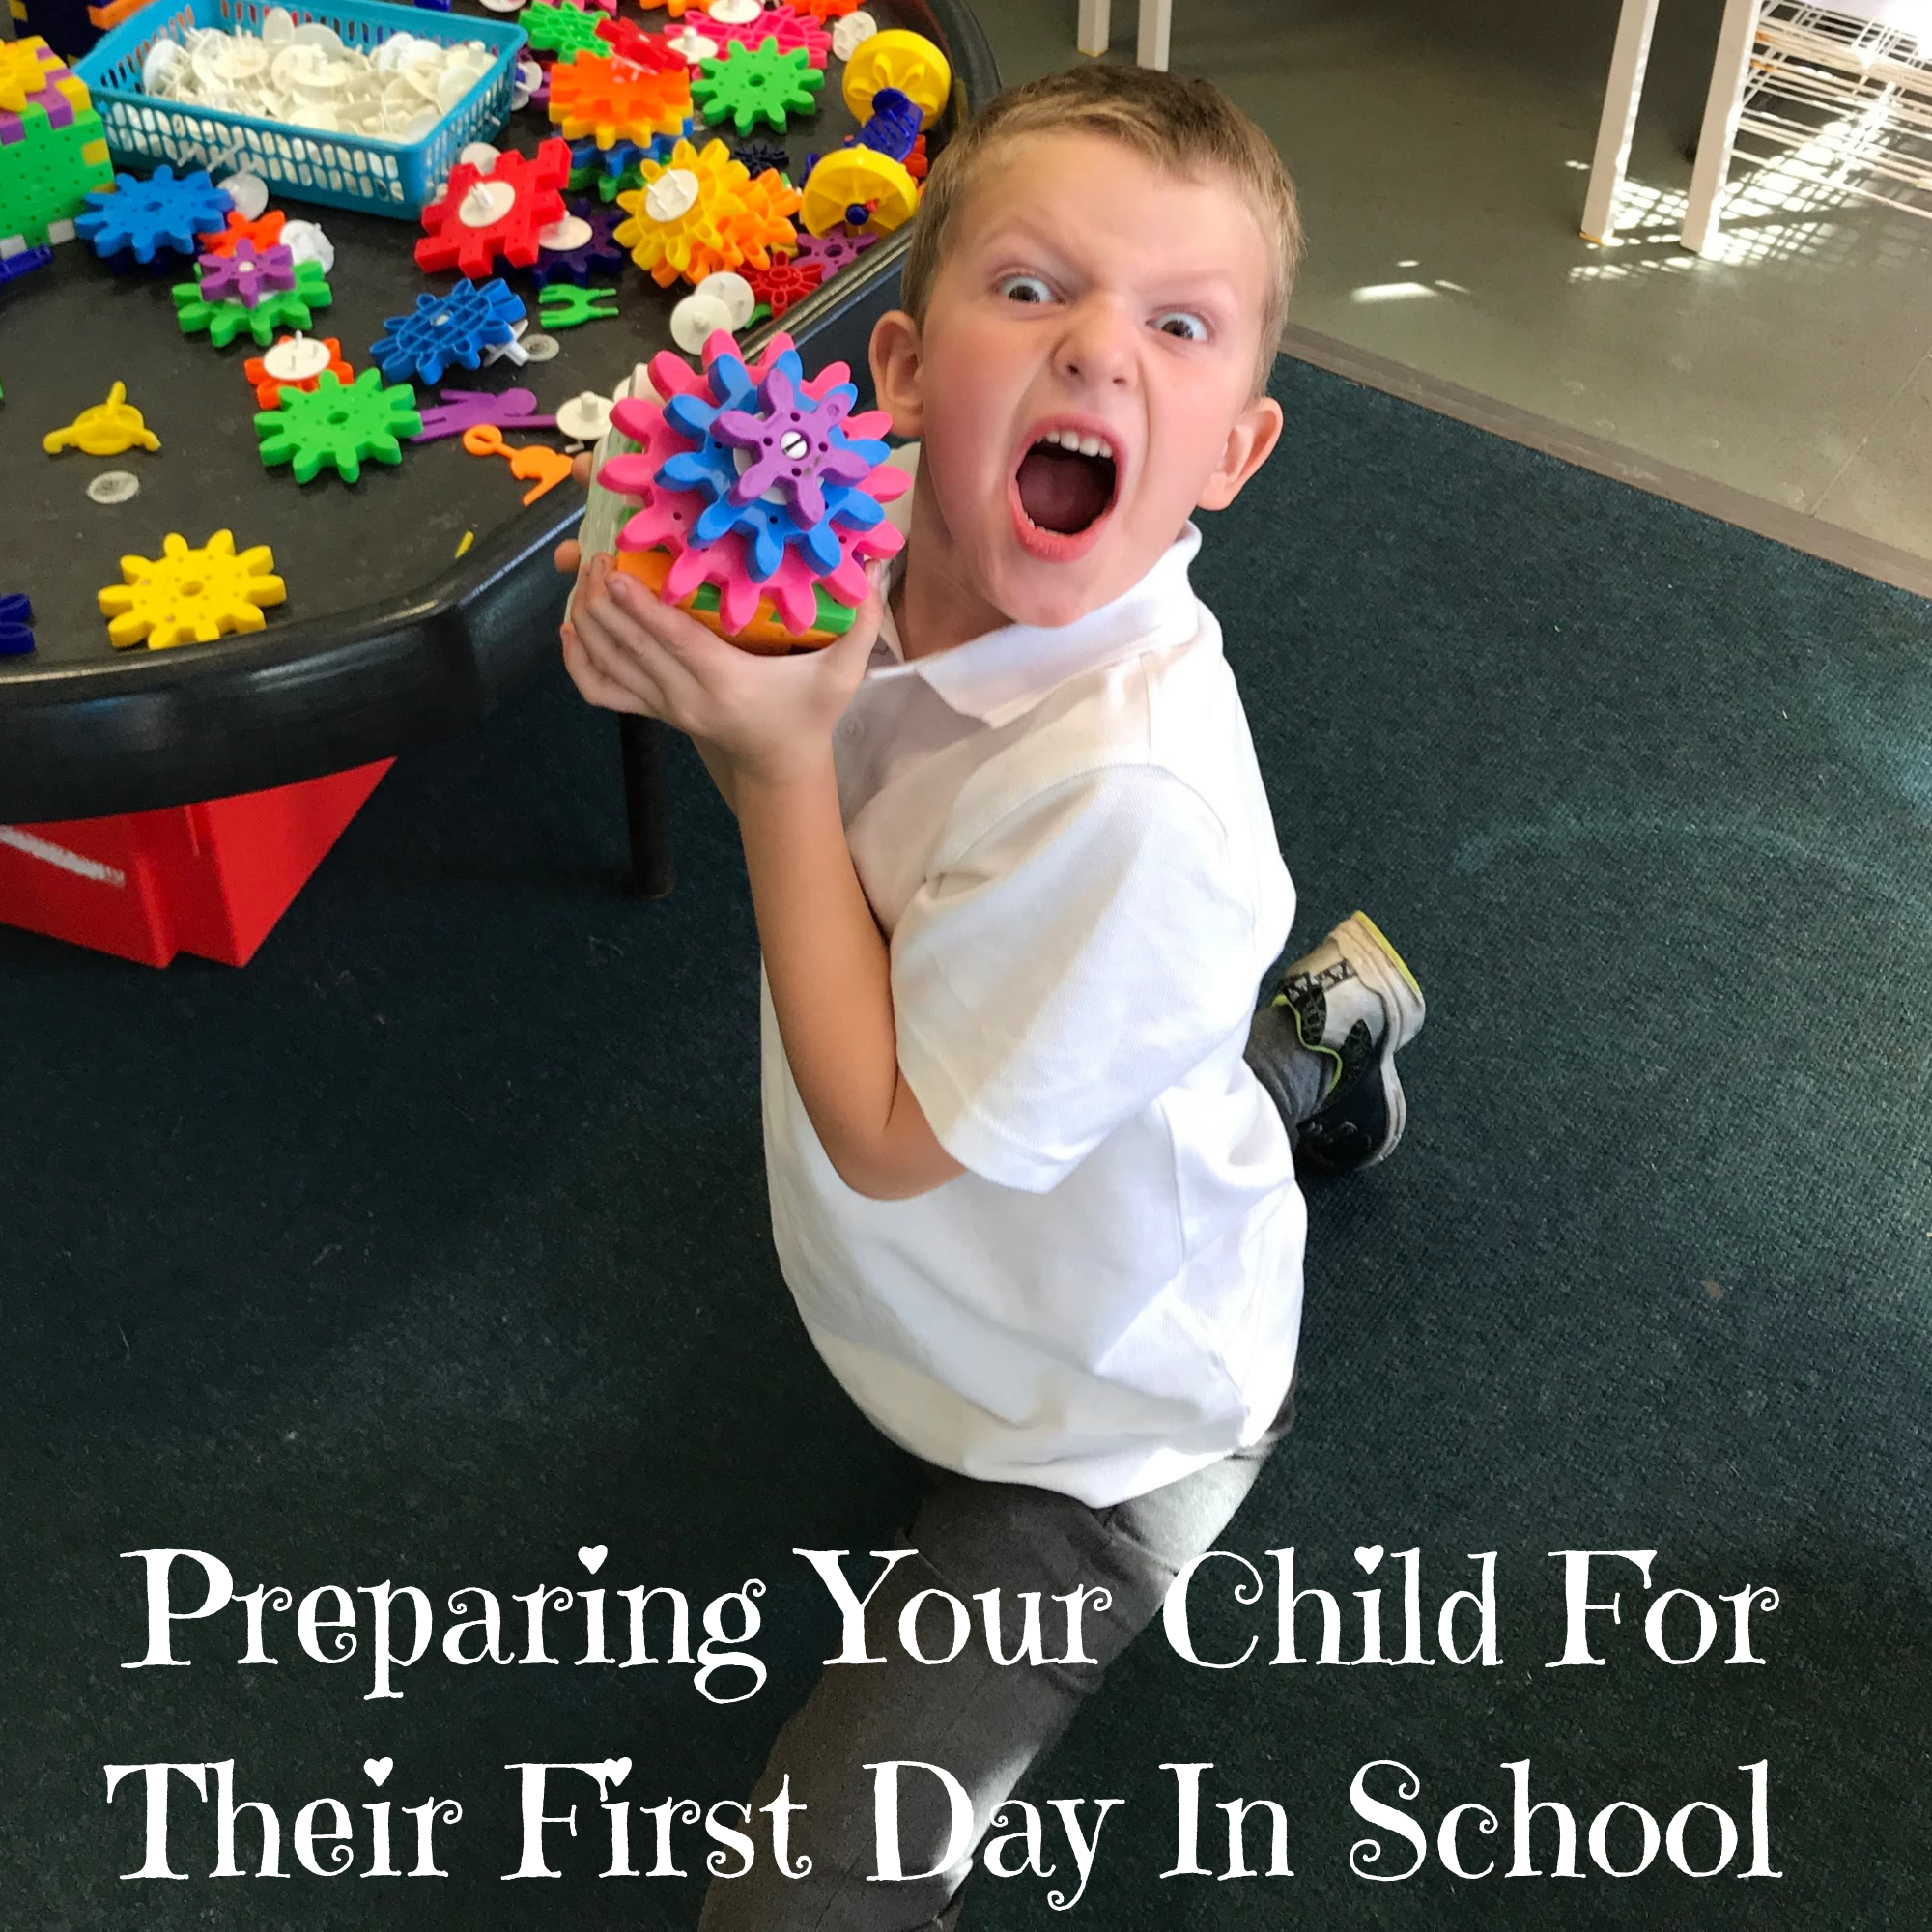 Preparing Your Child For Their First Day In School